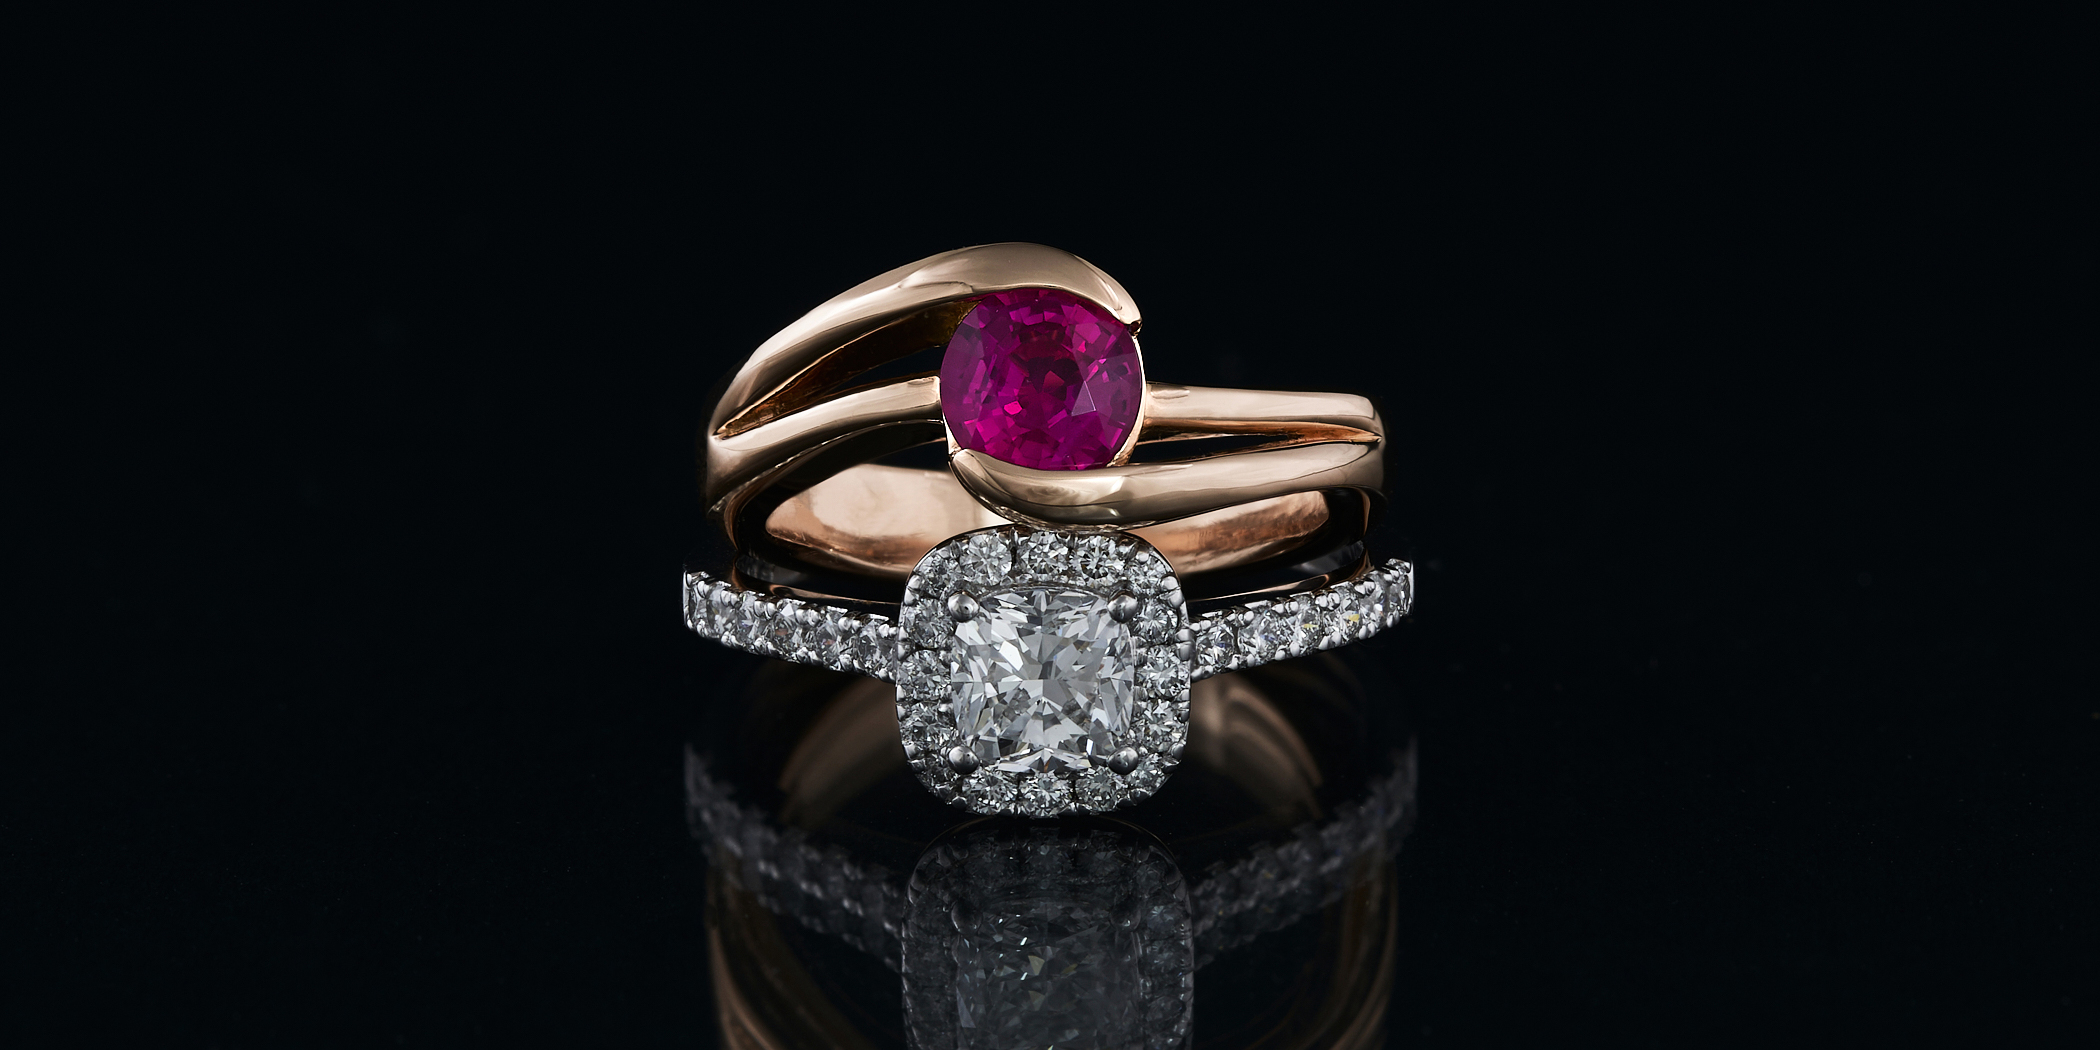 A remade Ruby proposal ring and one that may or may not be remade.